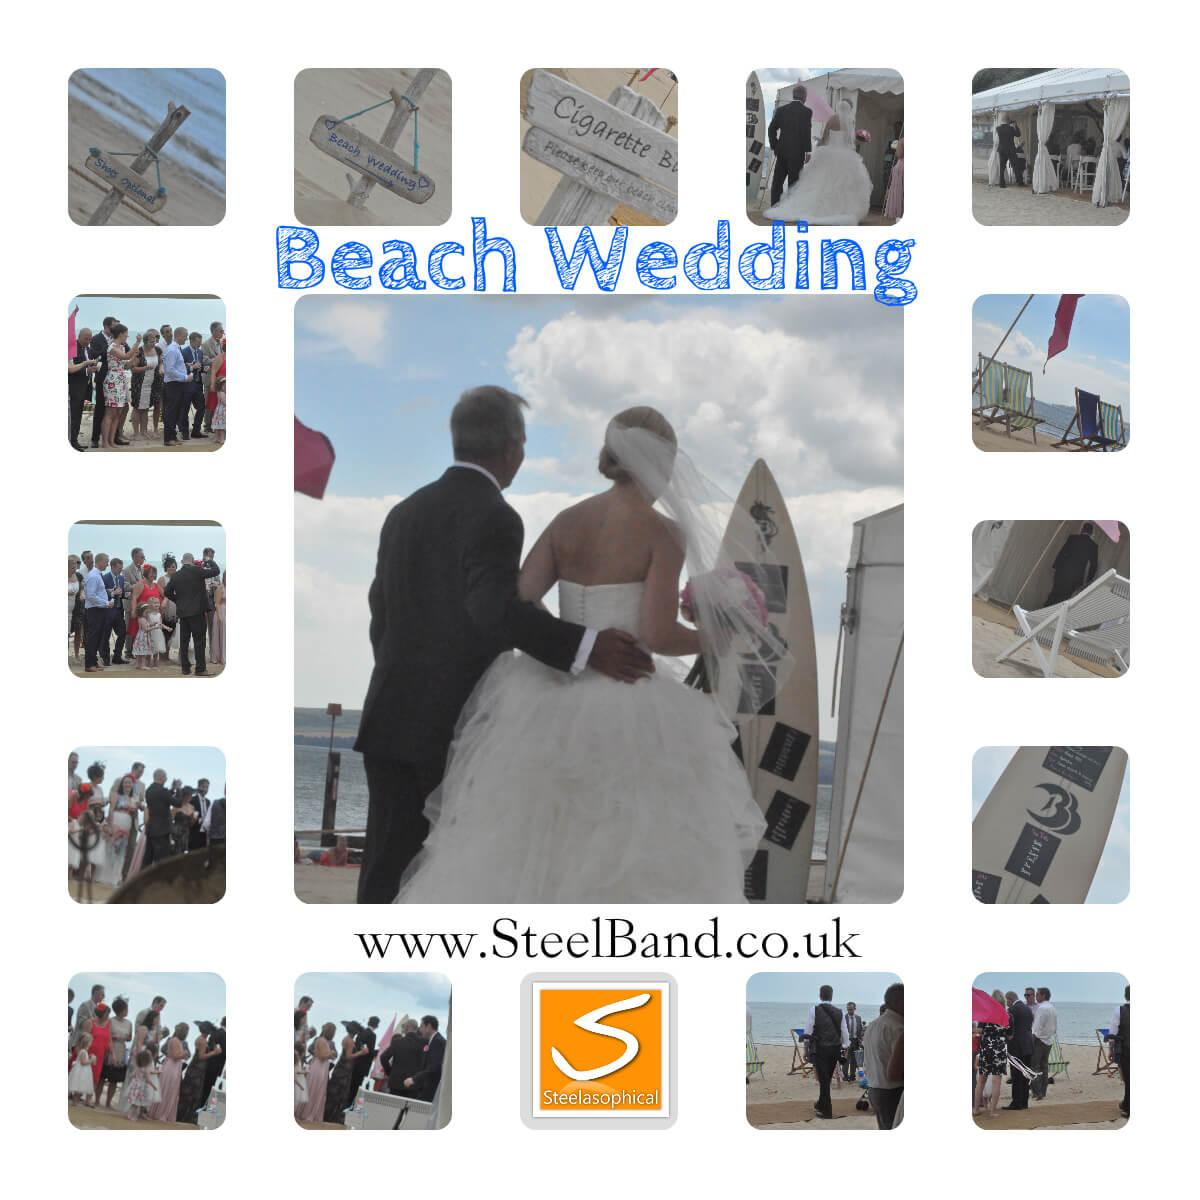 Beach Weddings Bournemouth Steeasophical